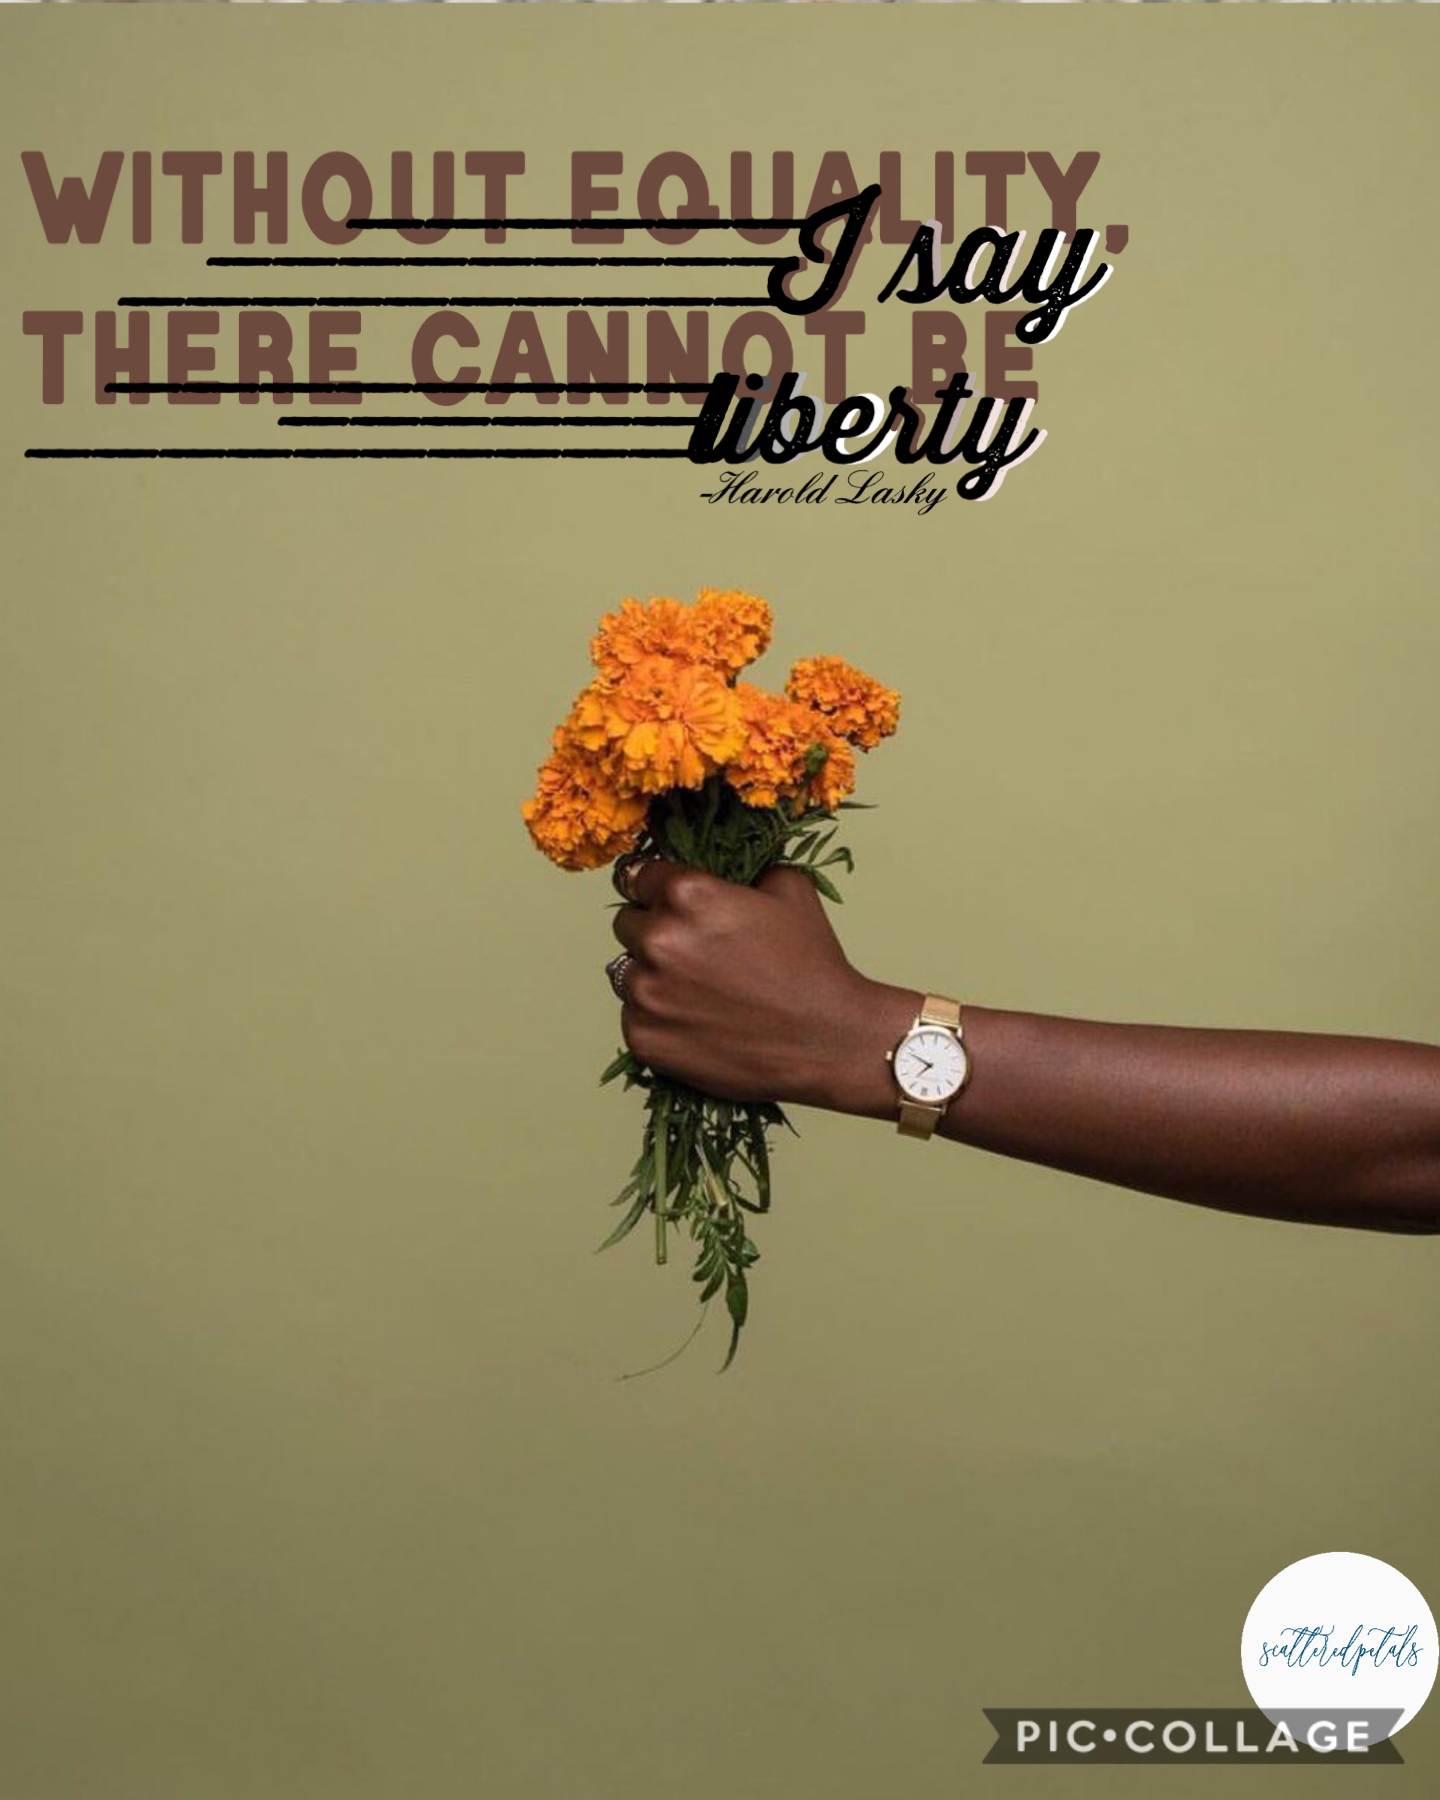 """Tap Equality collage, I thought this message should be spread more  Quote: """"without equality, I say there cannot be liberty"""" -Harold Lasky Date: 7/9/20 Question: should I do a icon contest or just a regular one?"""